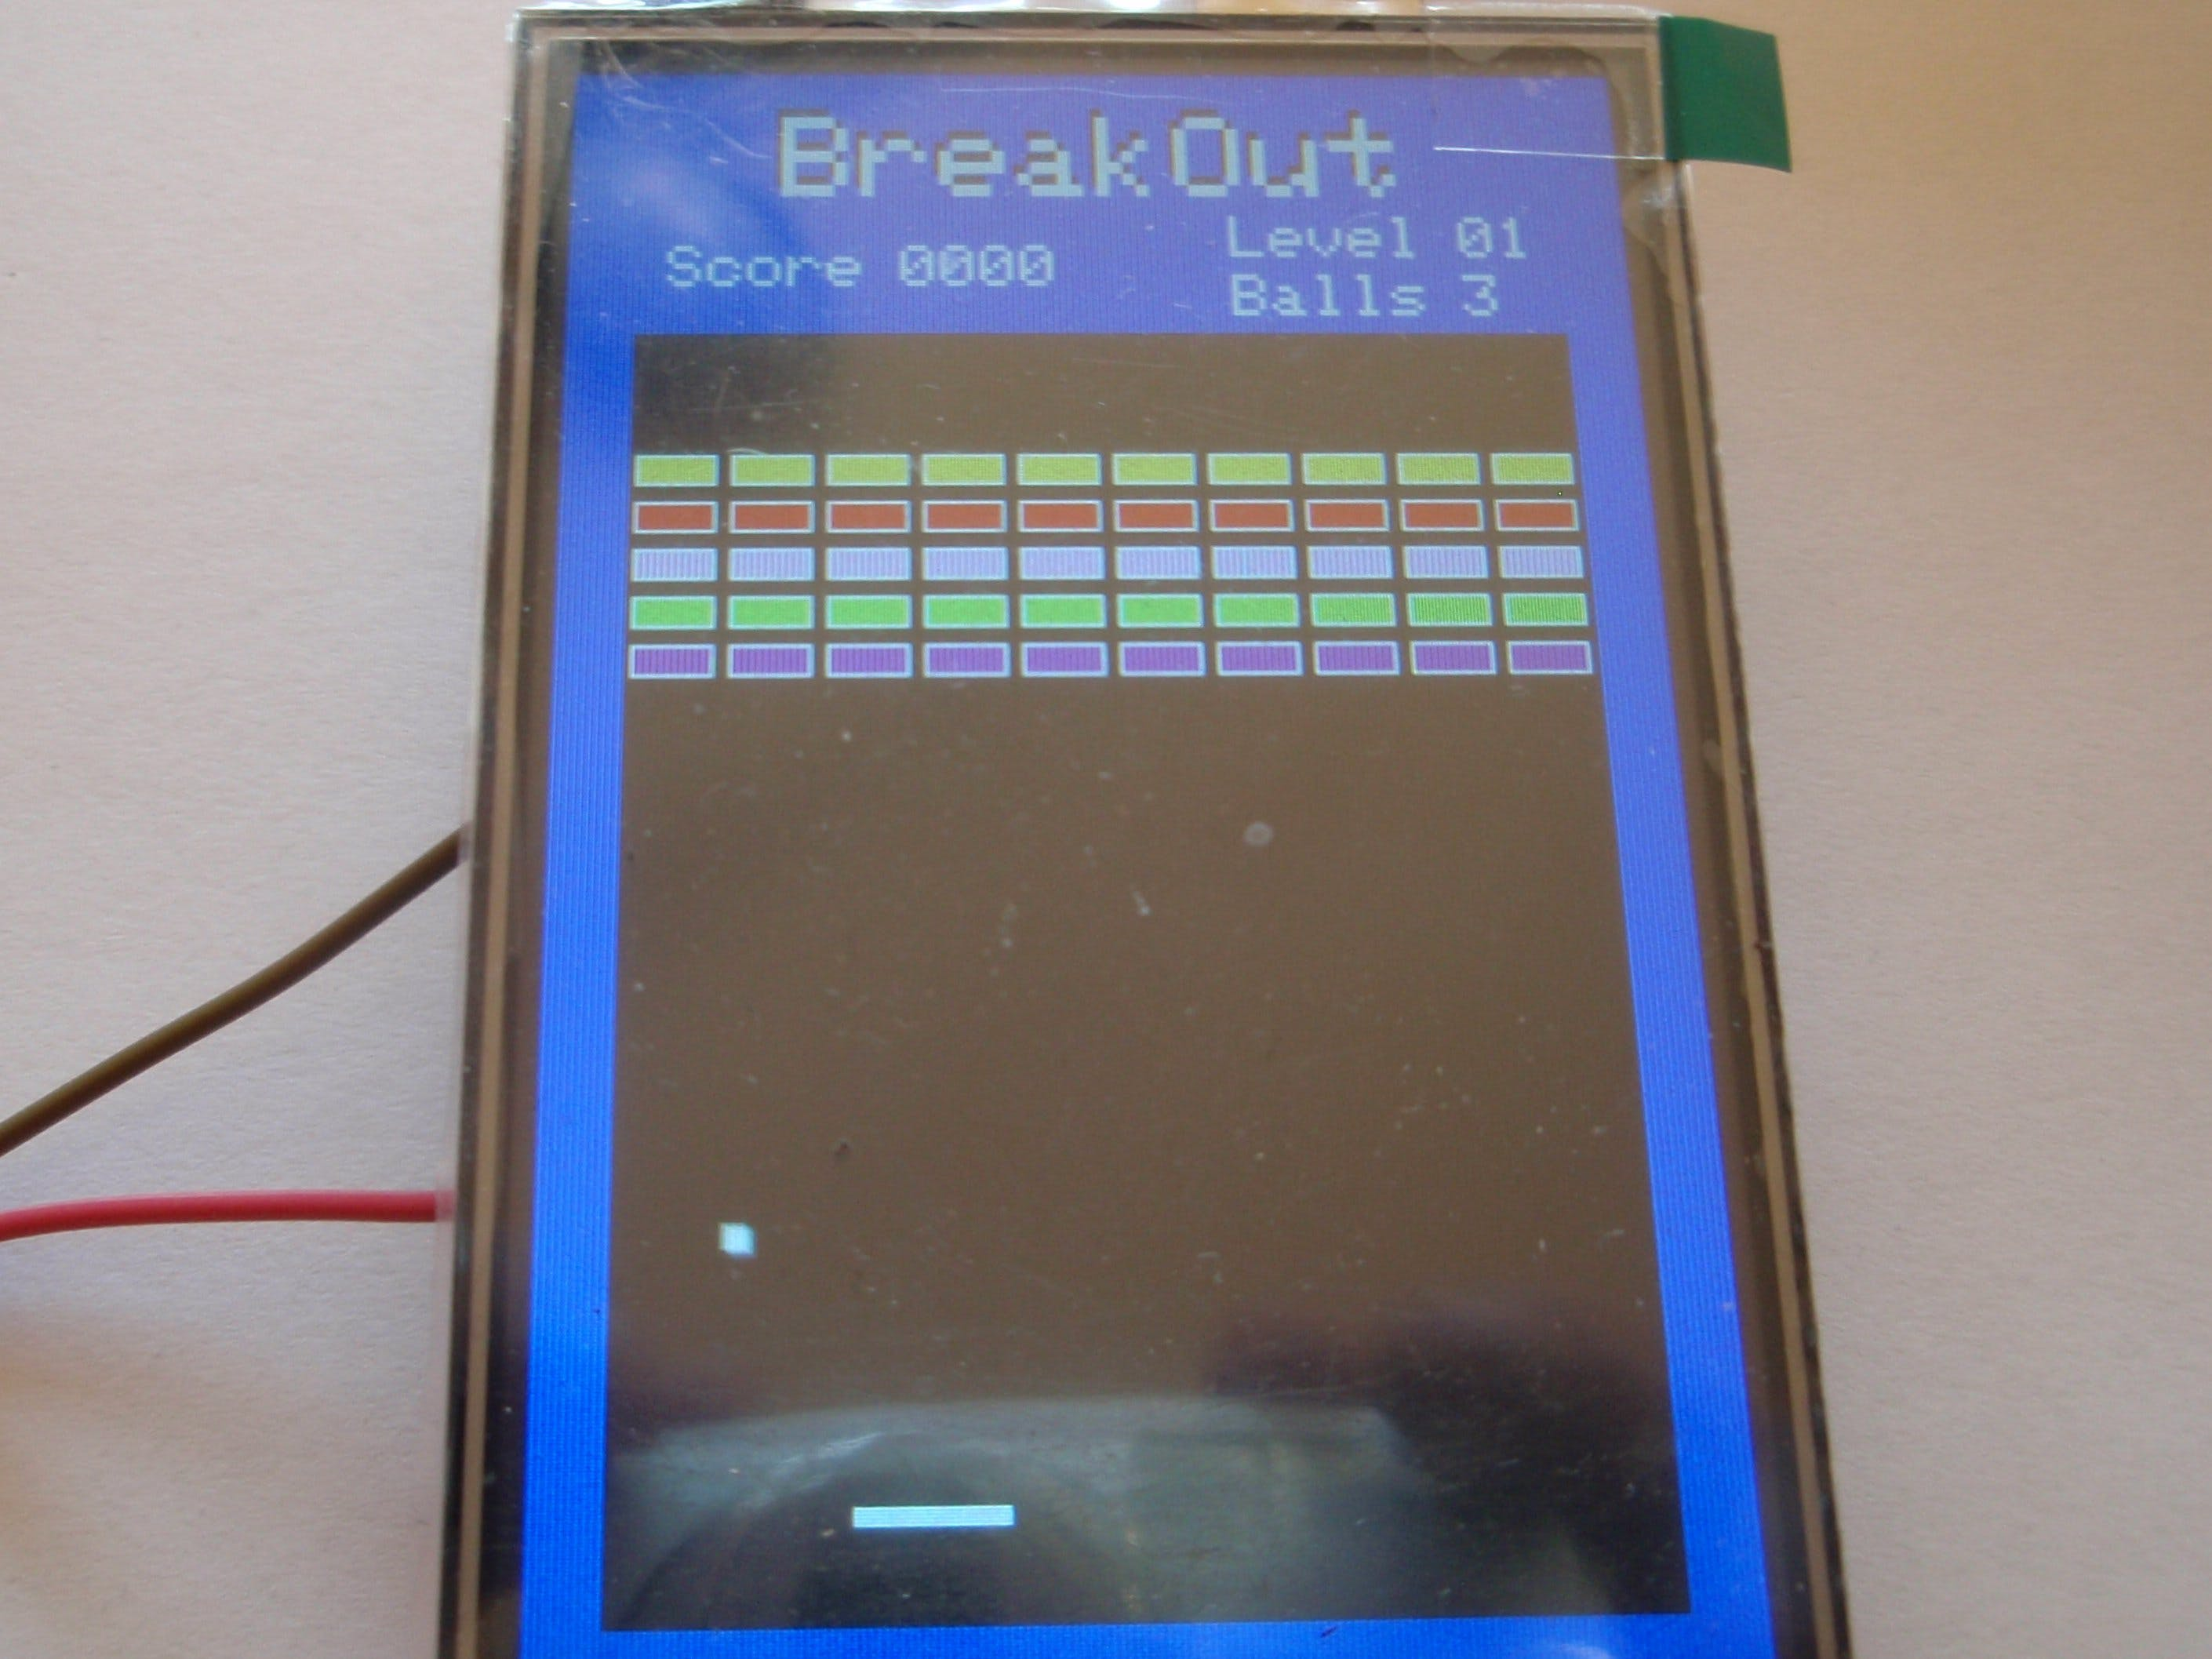 Arduino Blockout with touchscreen